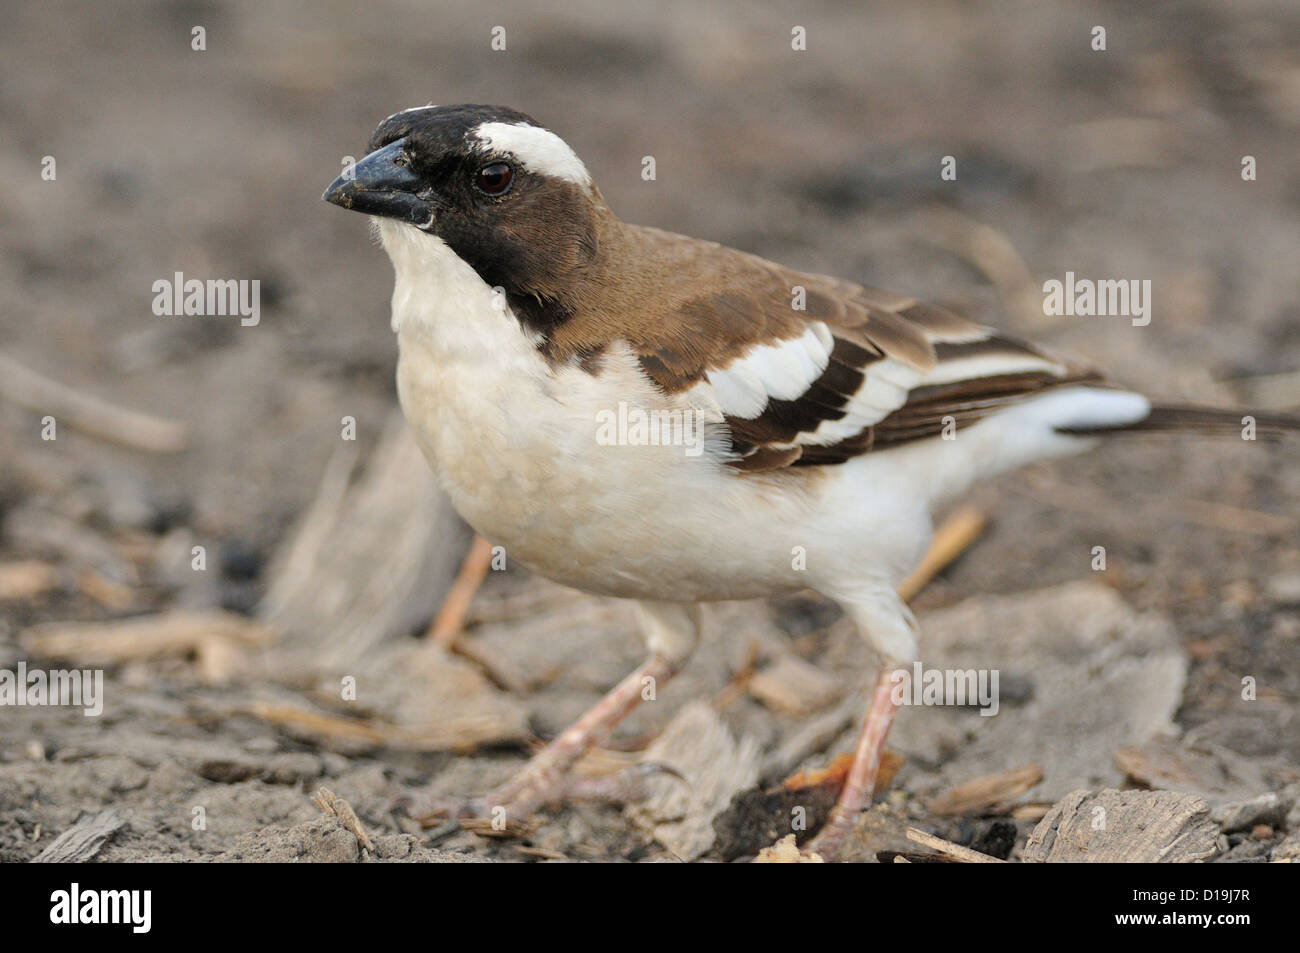 White-browed Sparrow-Weaver  Plocepasser mahali, Chawo Lake, Nechisar National Park, Arna Minch, Etiopia, Africa - Stock Image